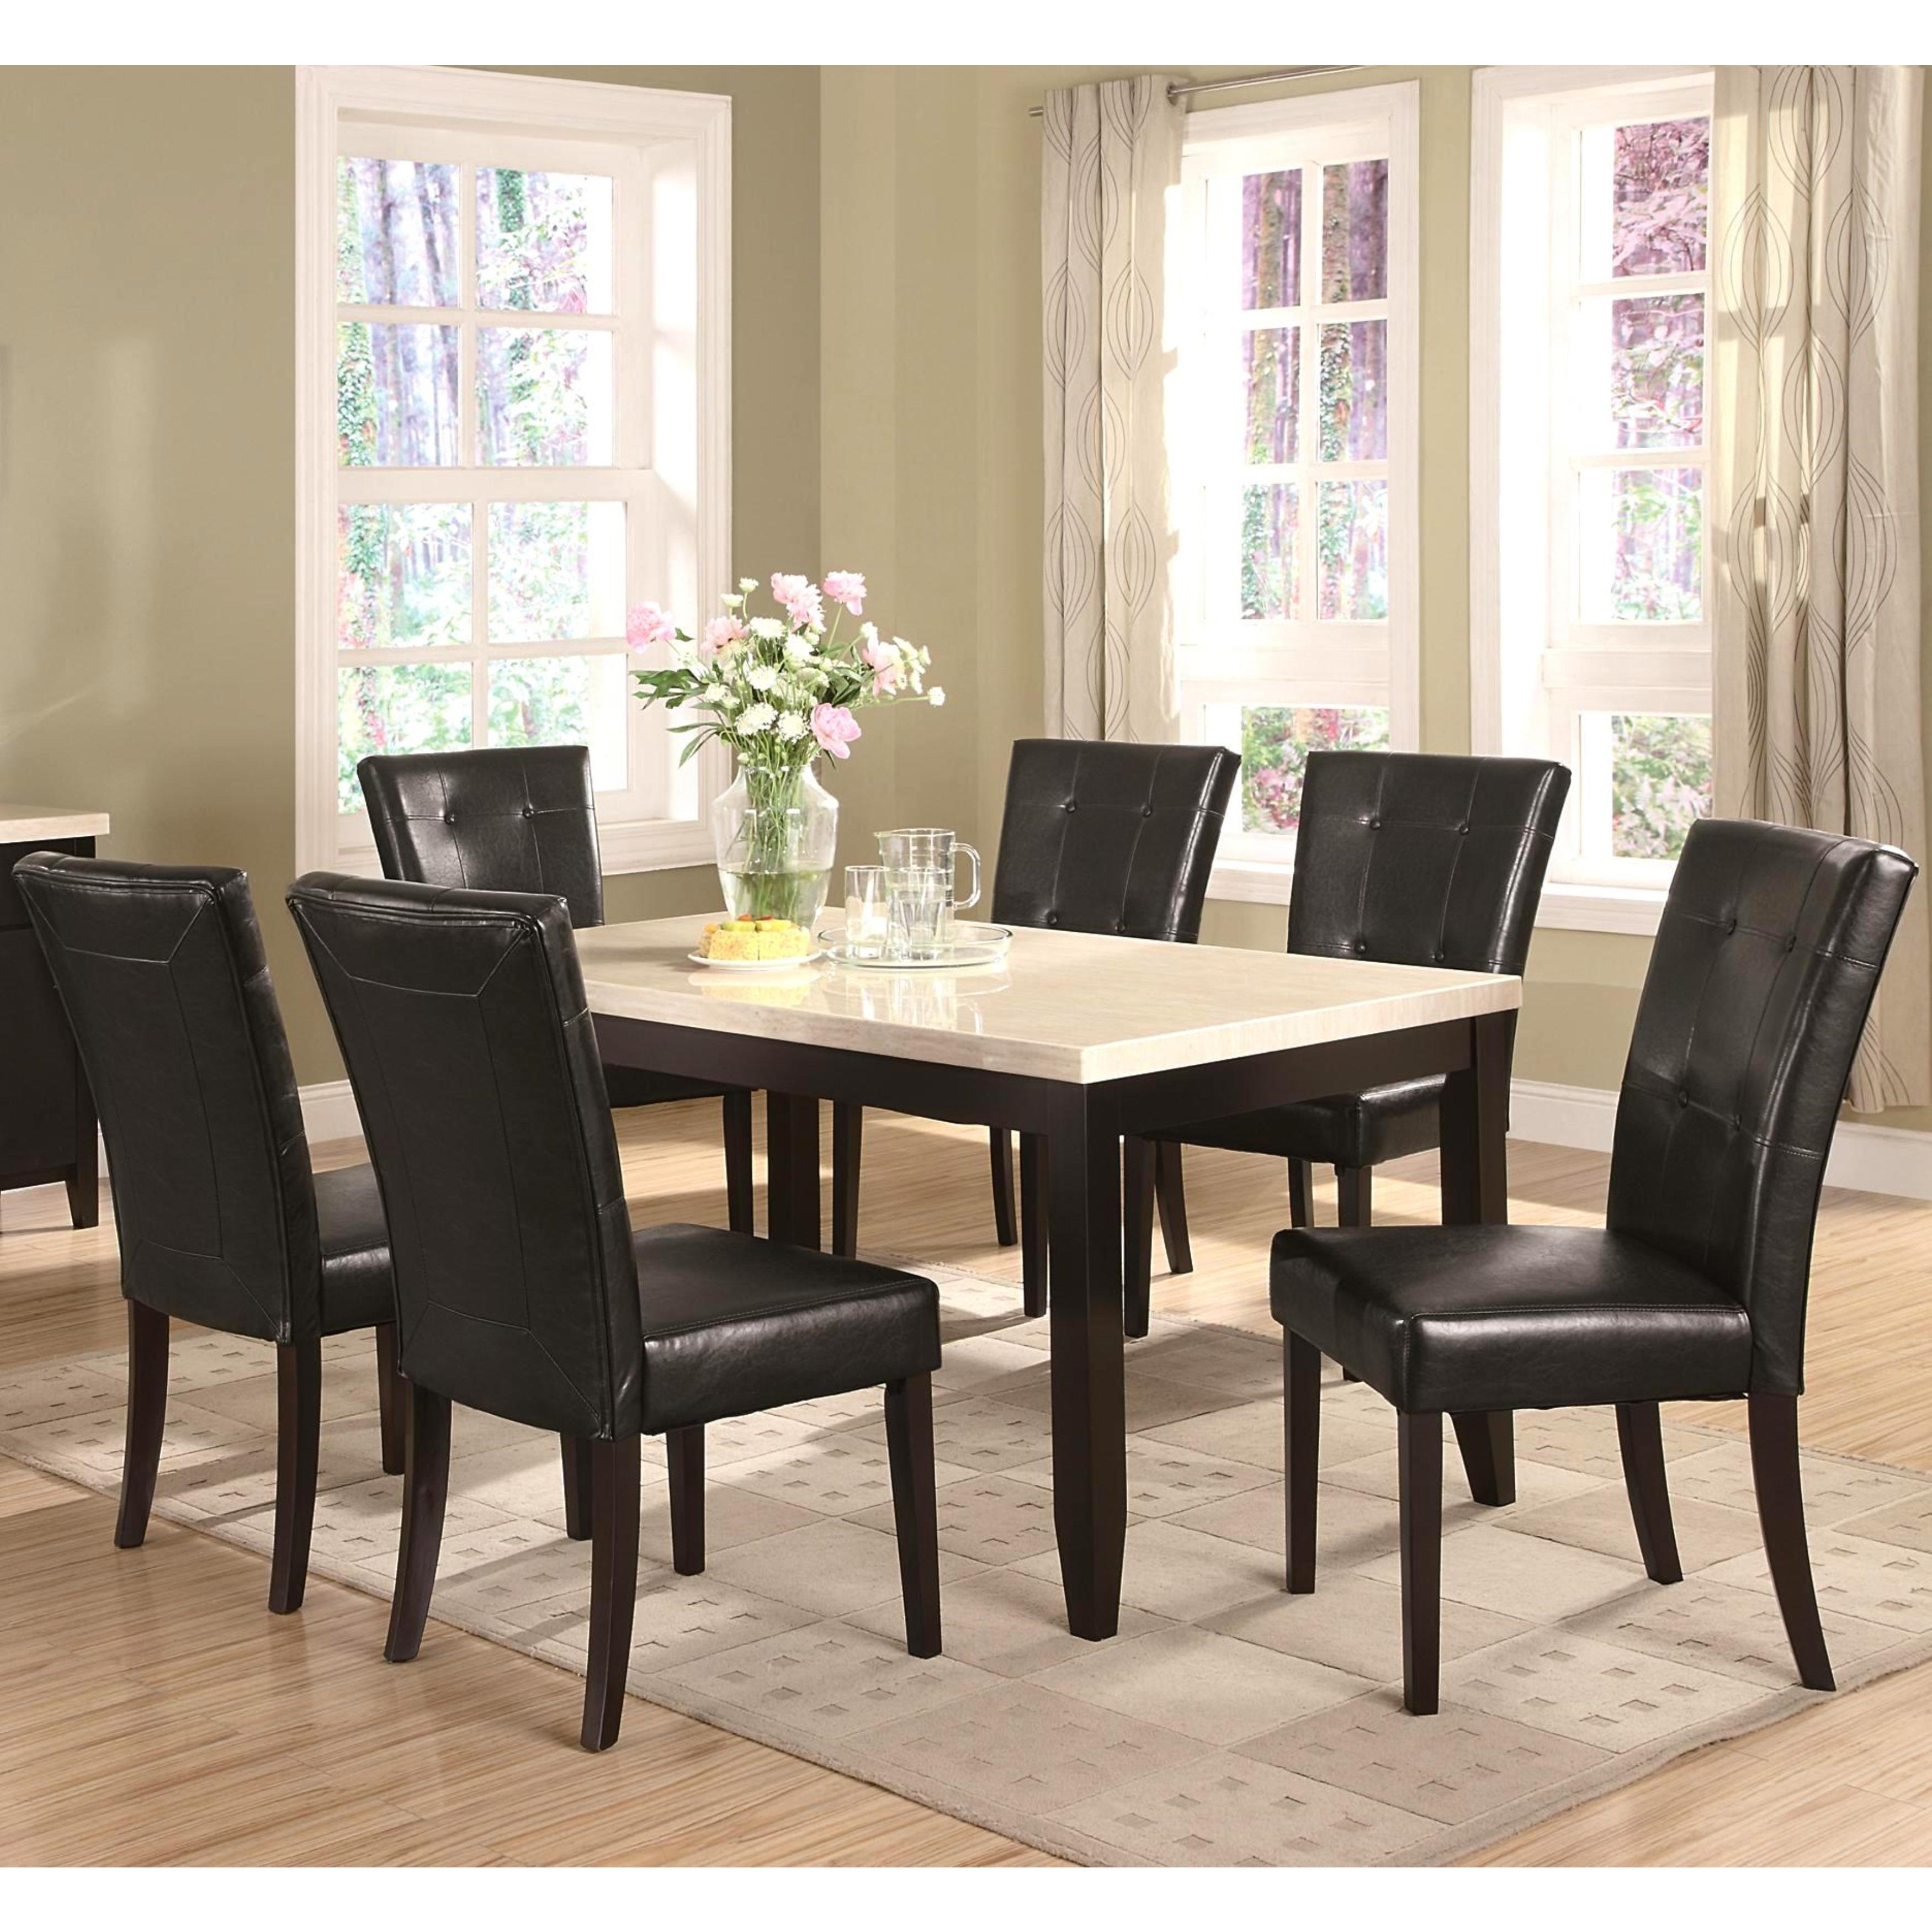 Sasfay Contemporary Style Dining Set with Faux Cream (Ivo...